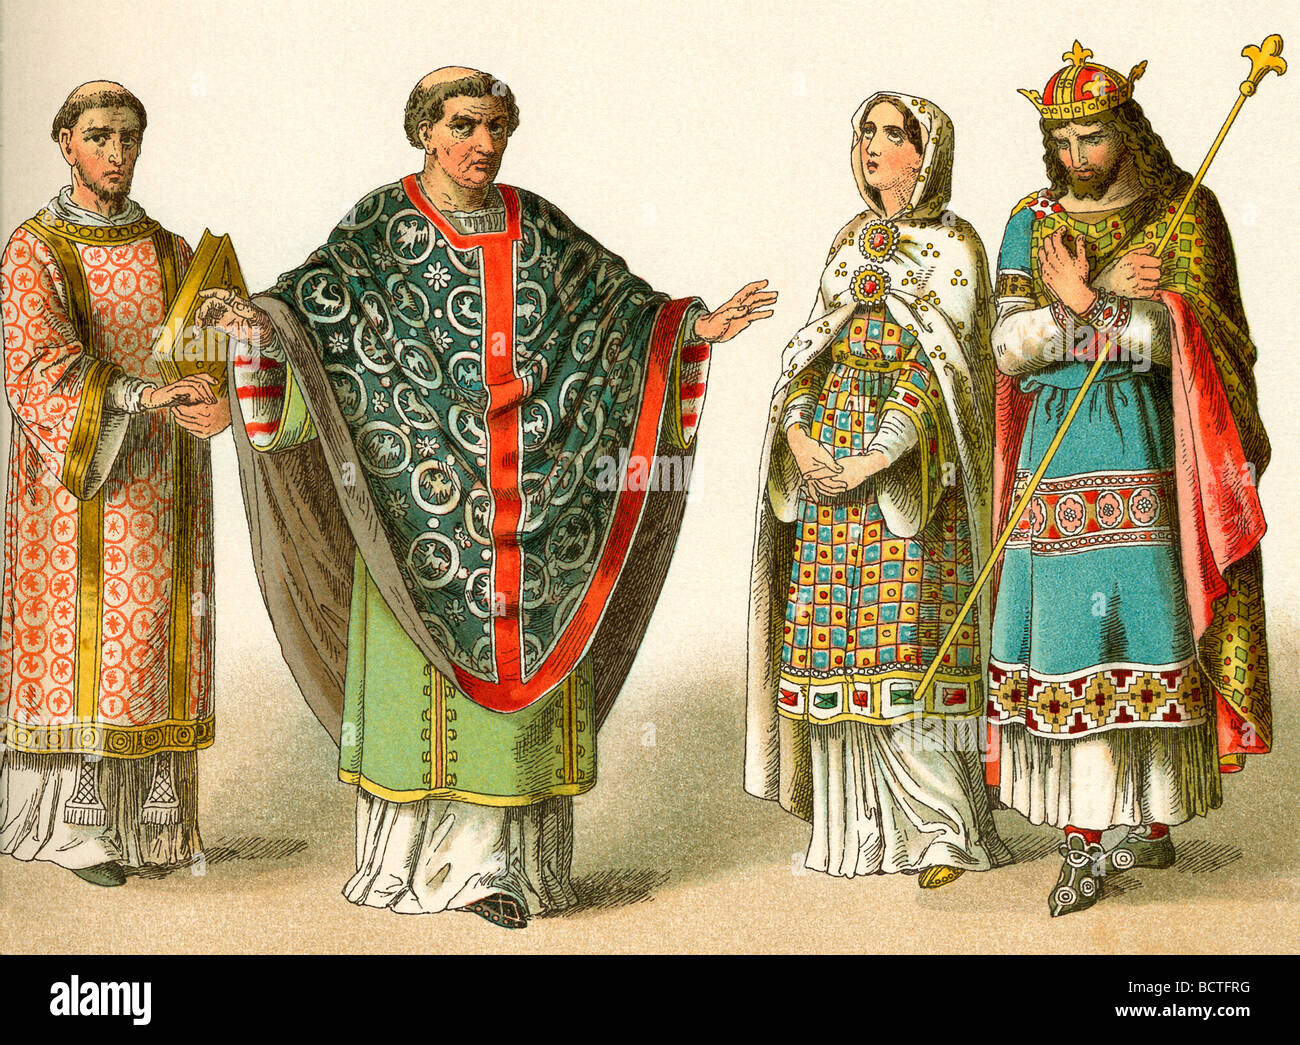 The costumes depicted here represent the garb worn around A.D. 900 by upper classes in France. - Stock Image